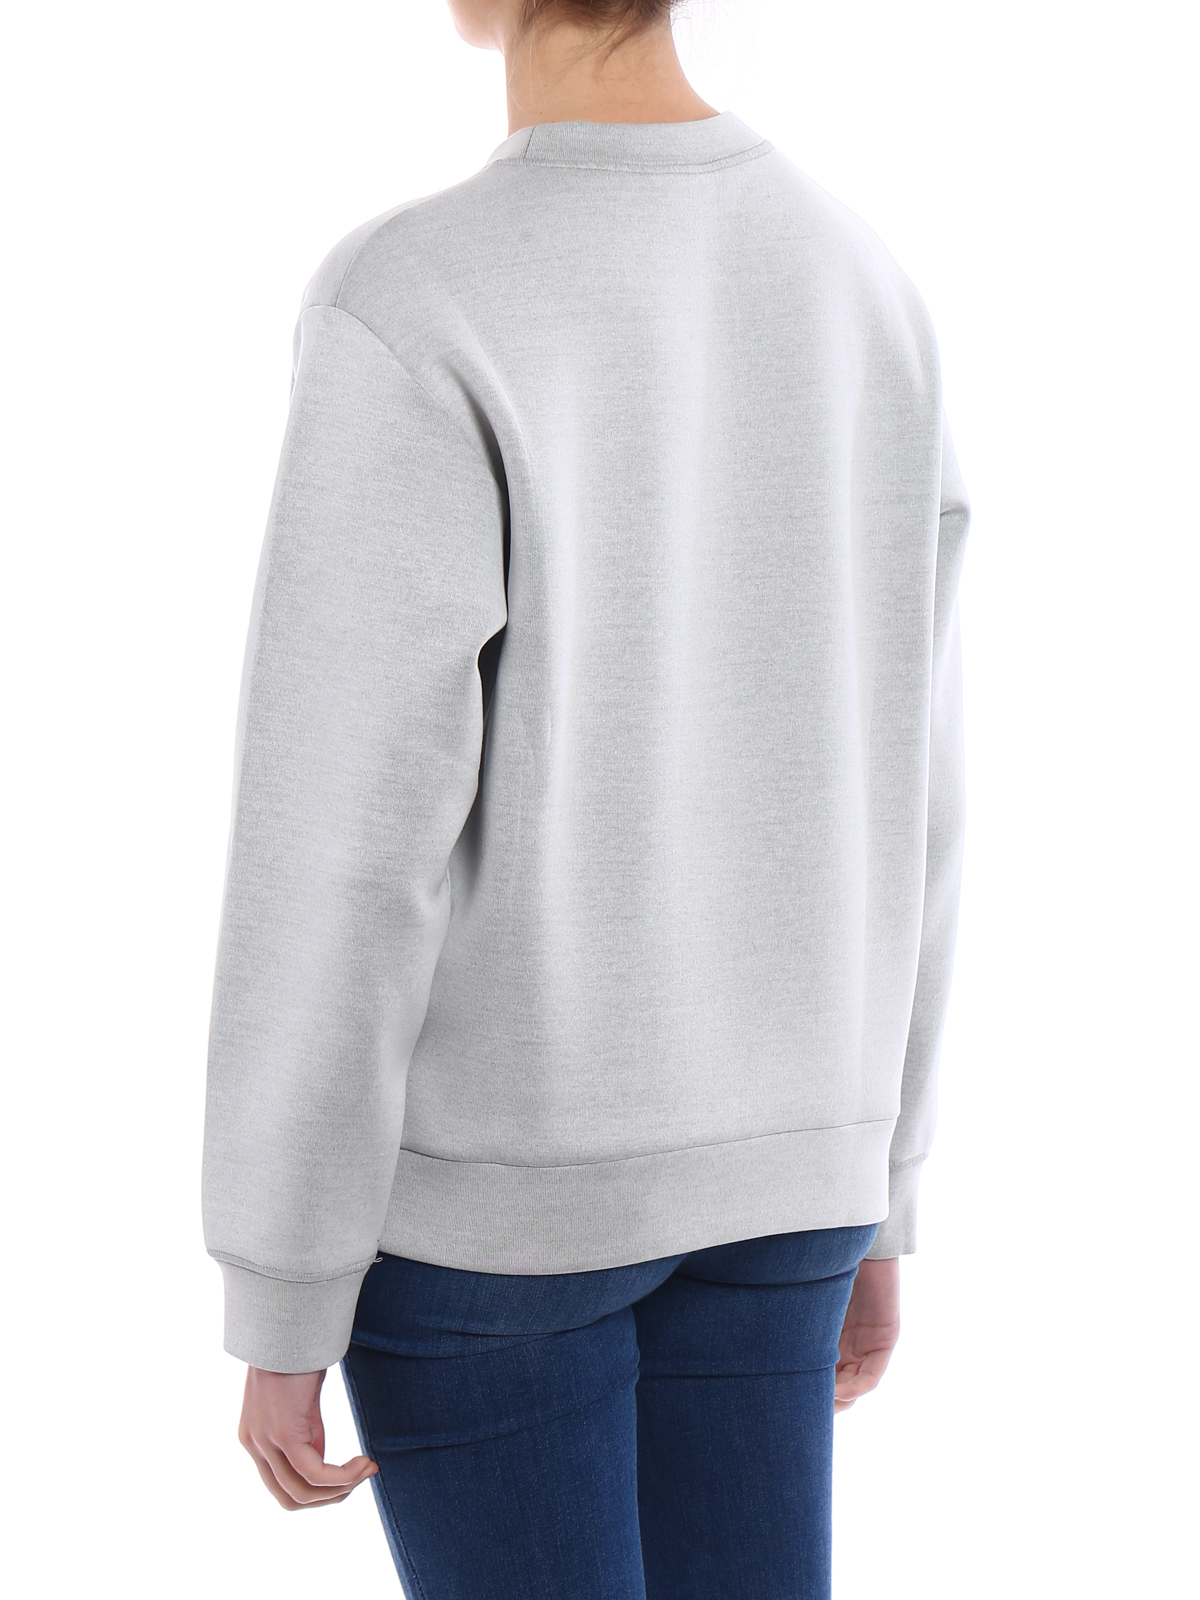 cfd64add4c Prada - Printed tech cotton sweatshirt - Sweatshirts & Sweaters ...